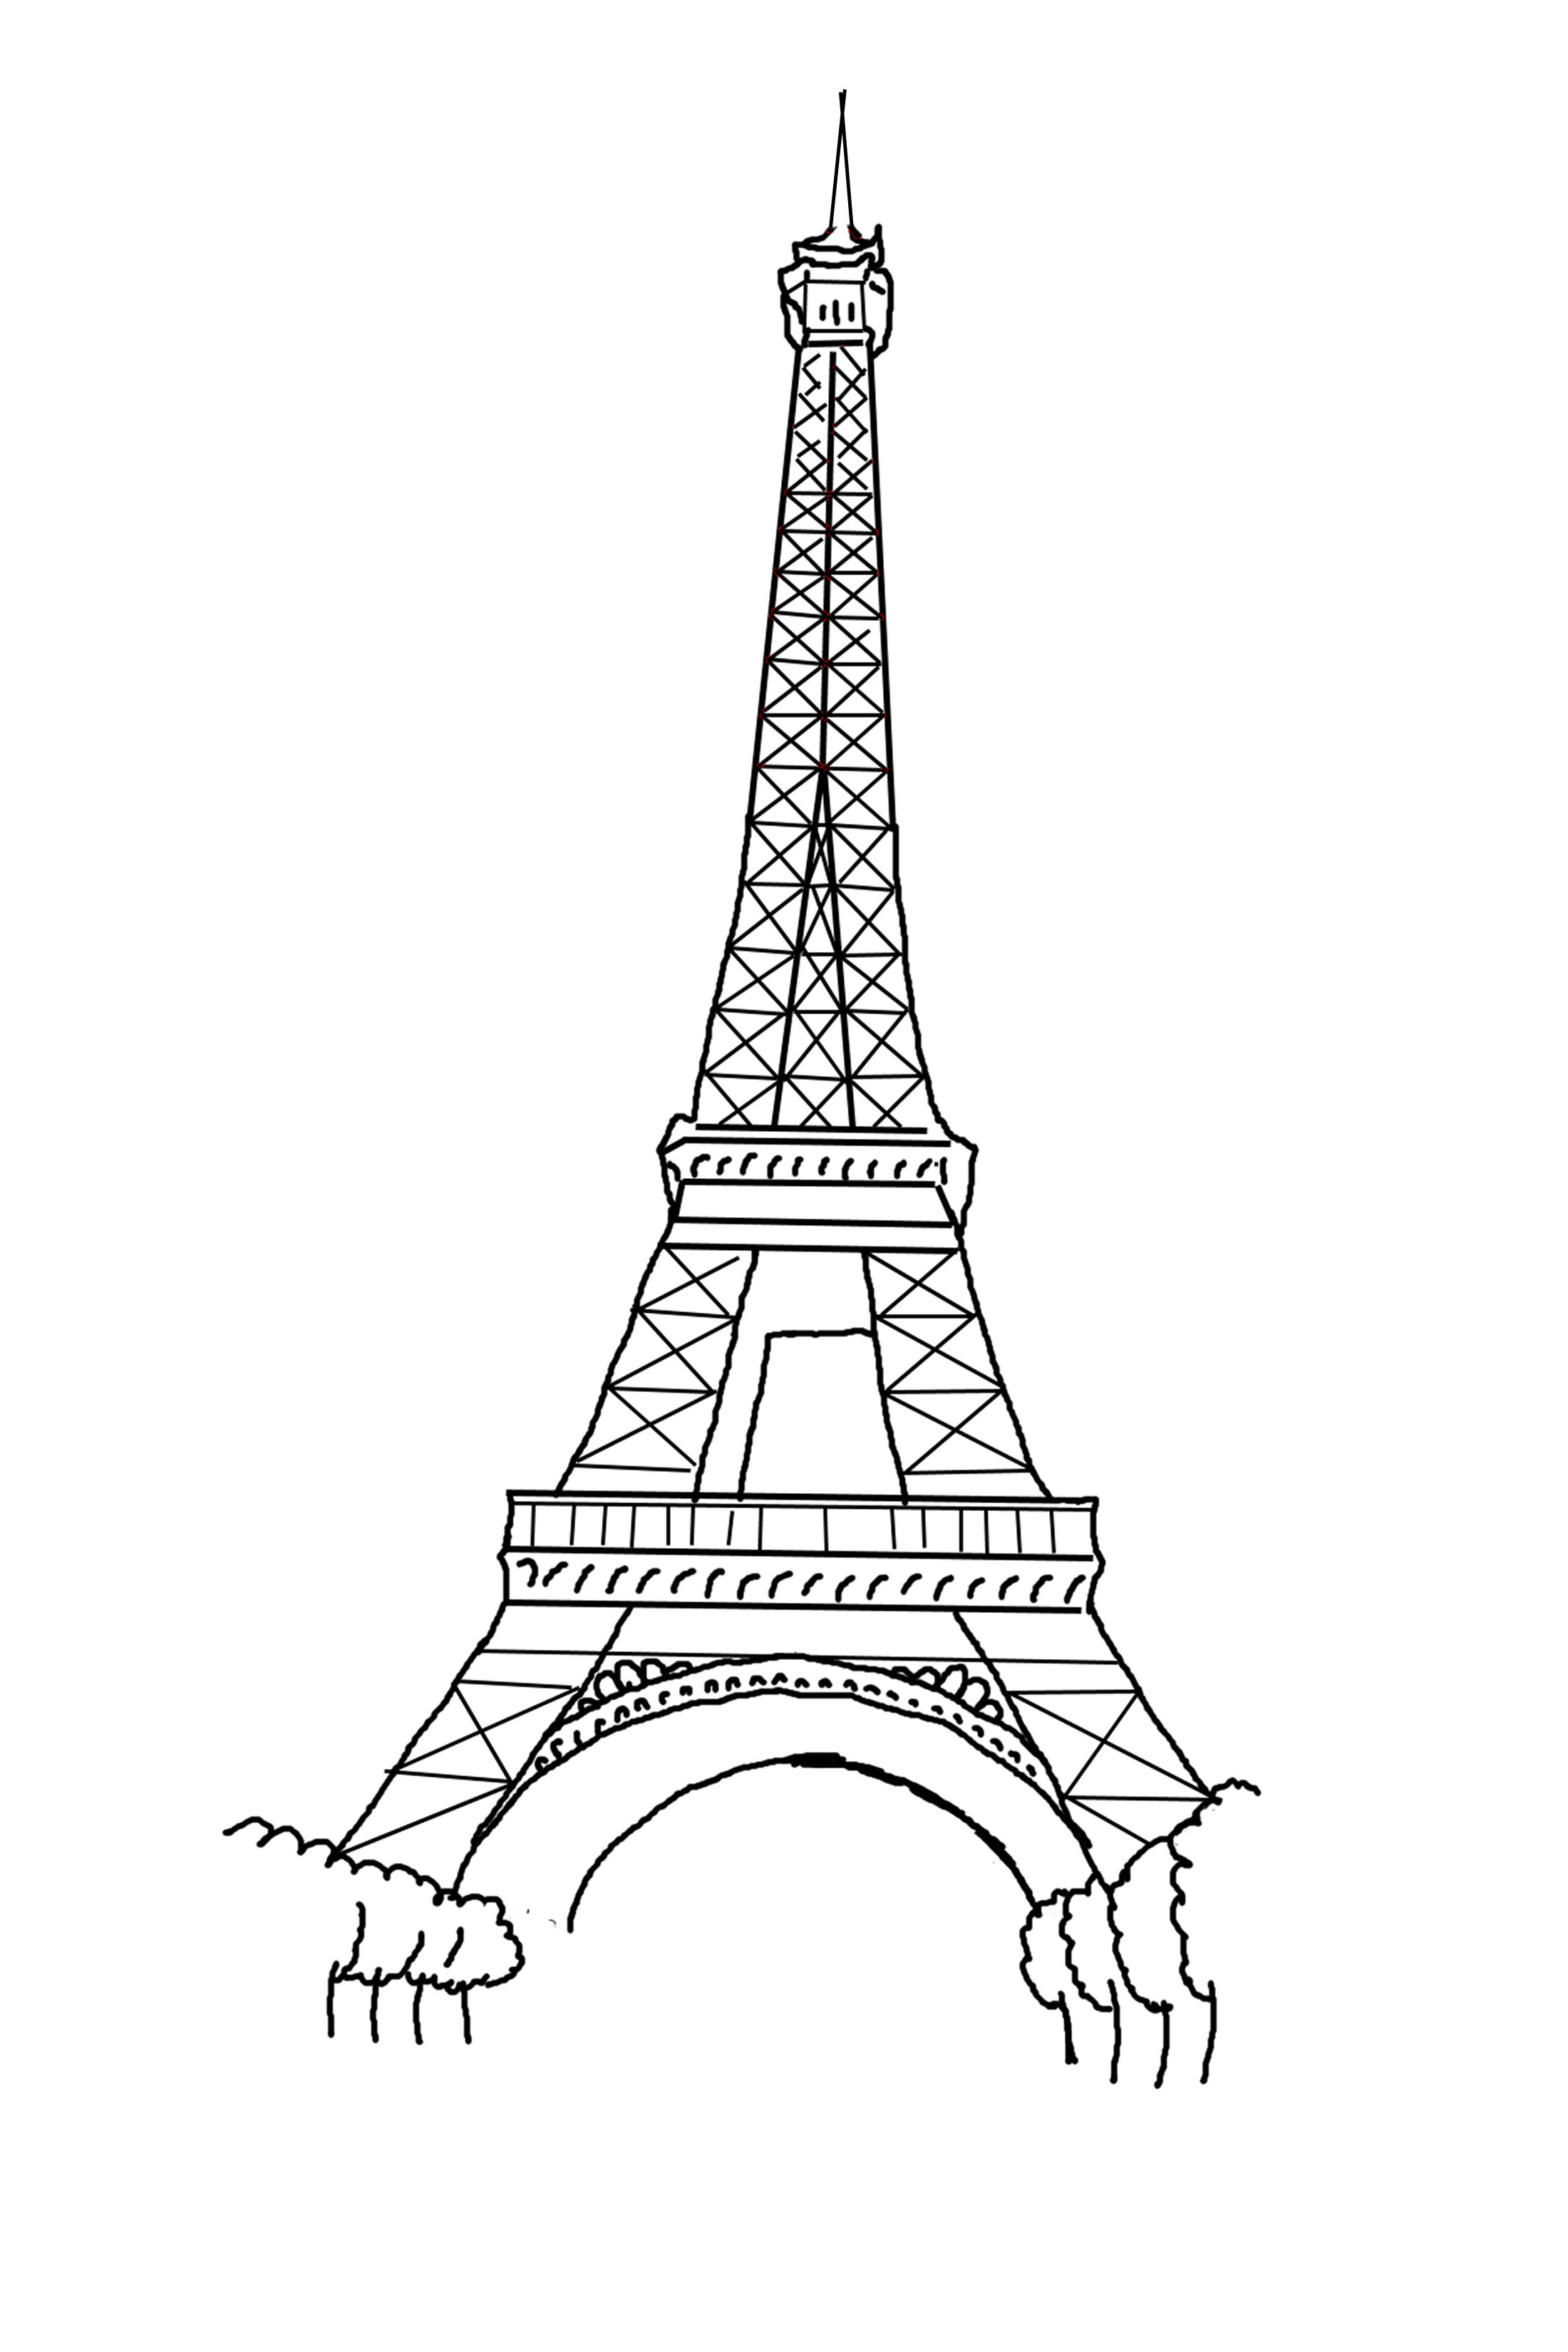 eiffel tower coloring pages printable eiffel tower coloring pages for kids cool2bkids tower eiffel pages coloring